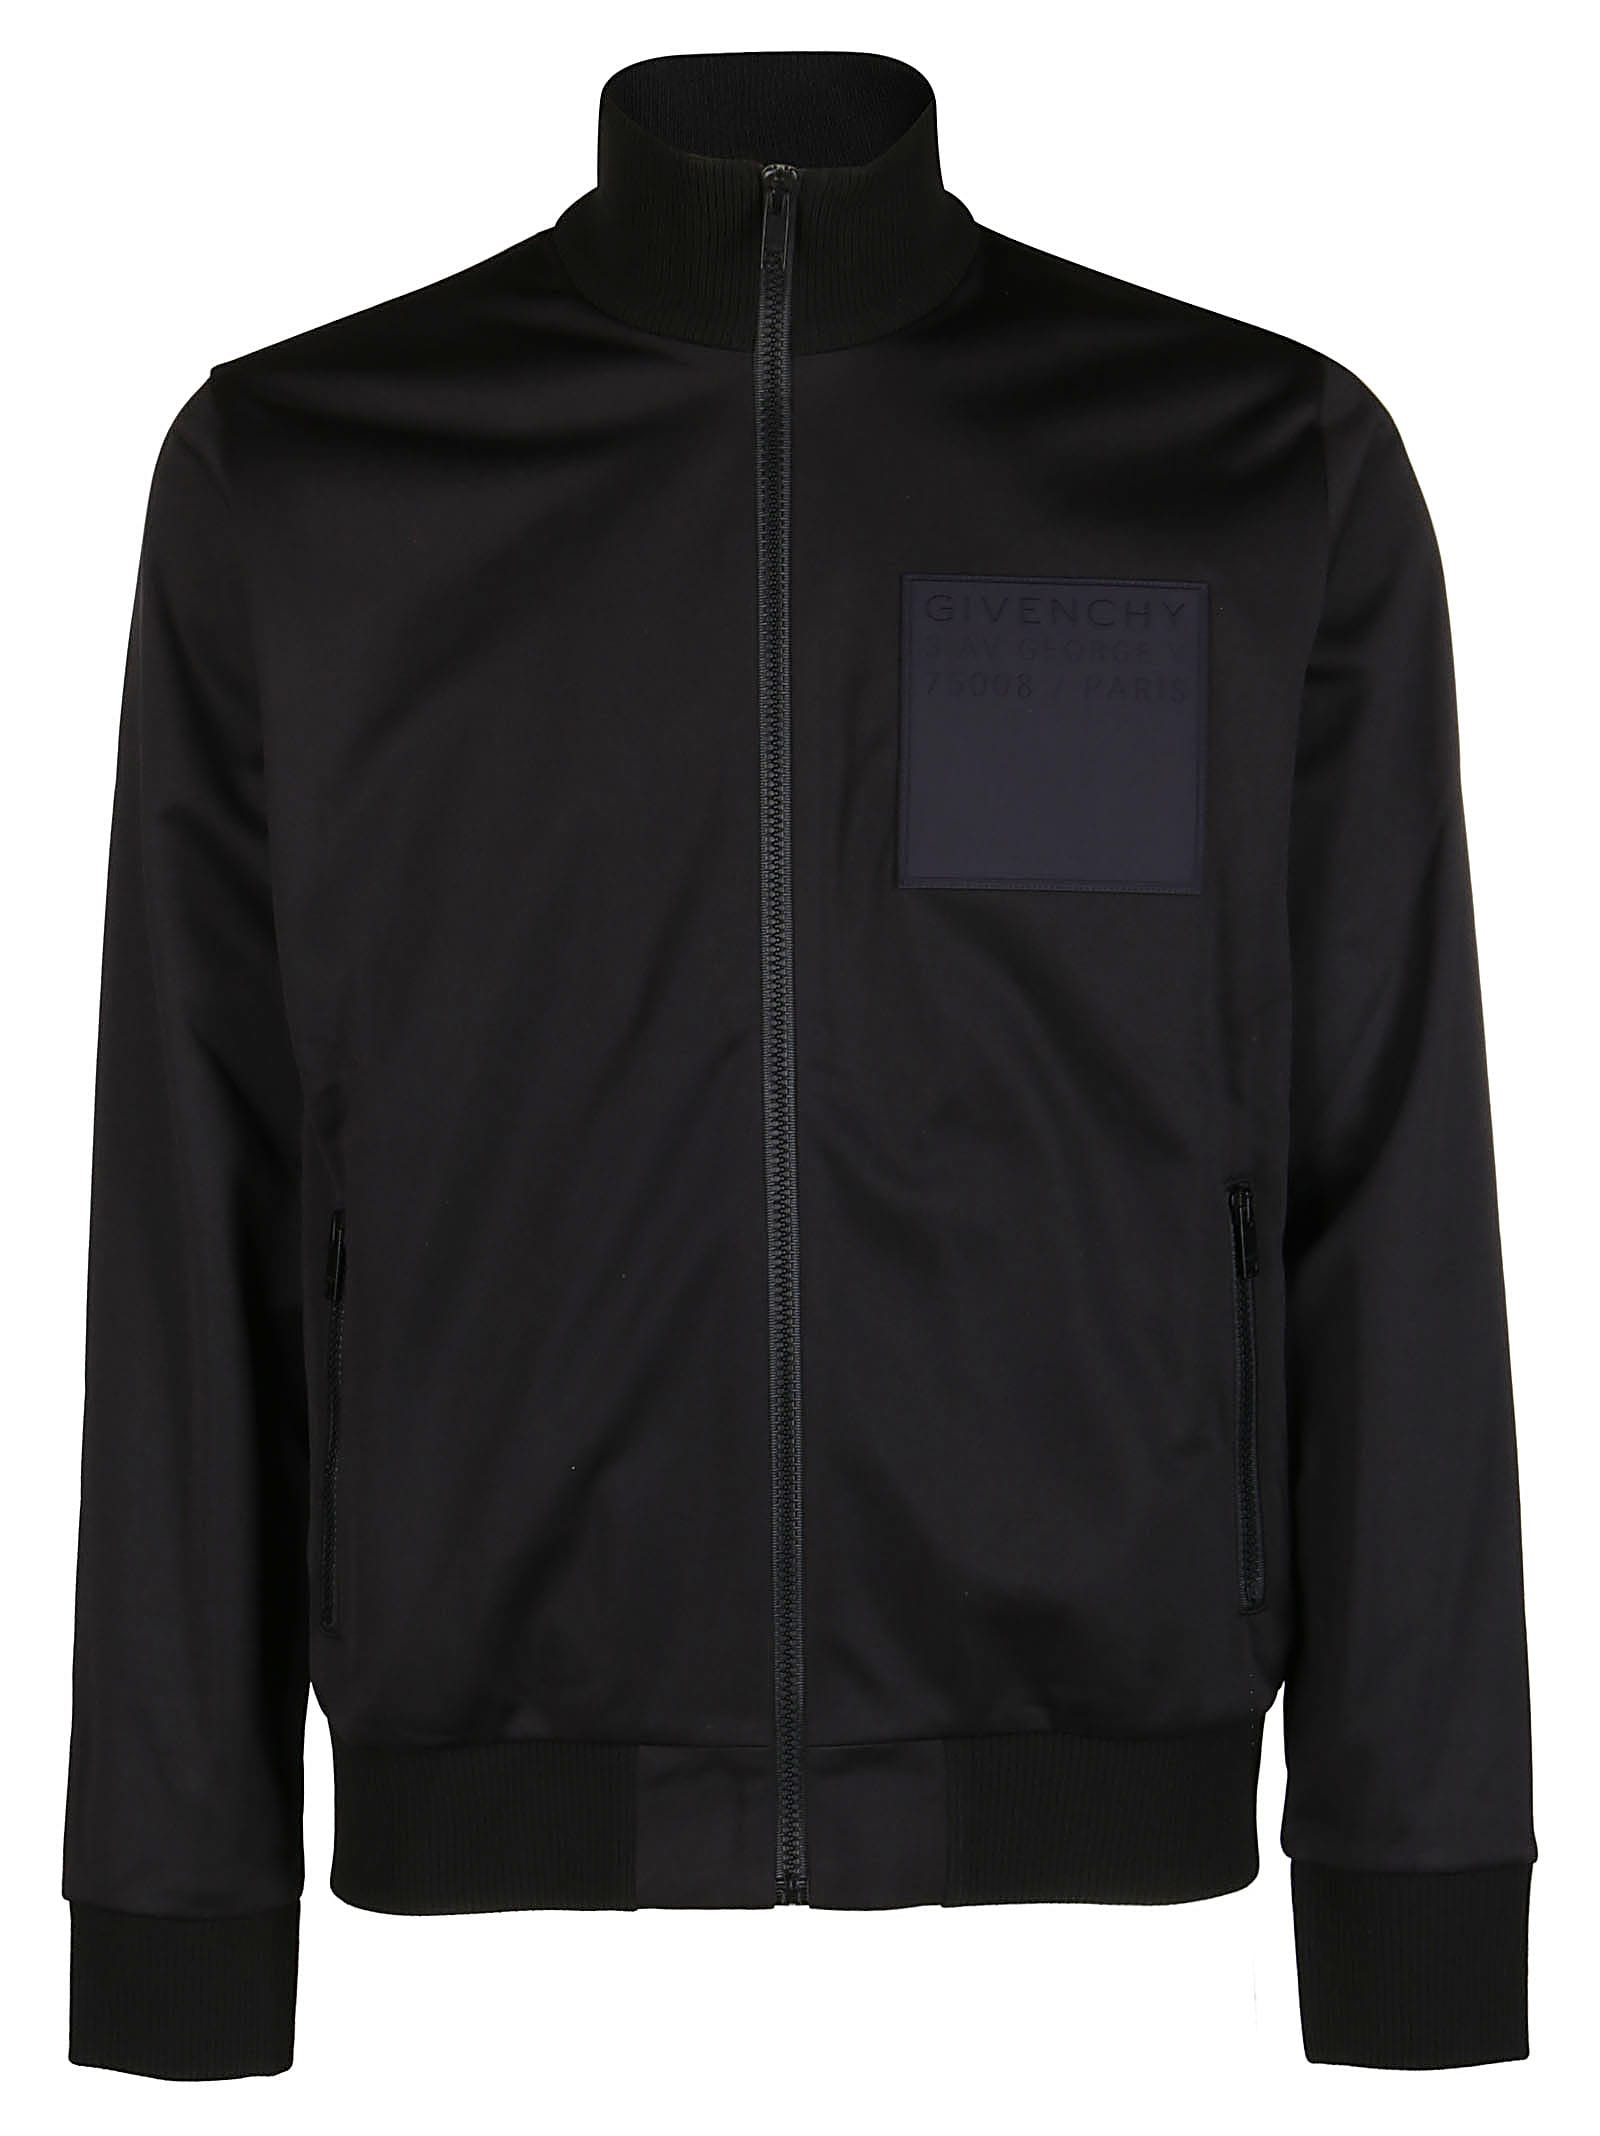 Givenchy Black Track Jacket